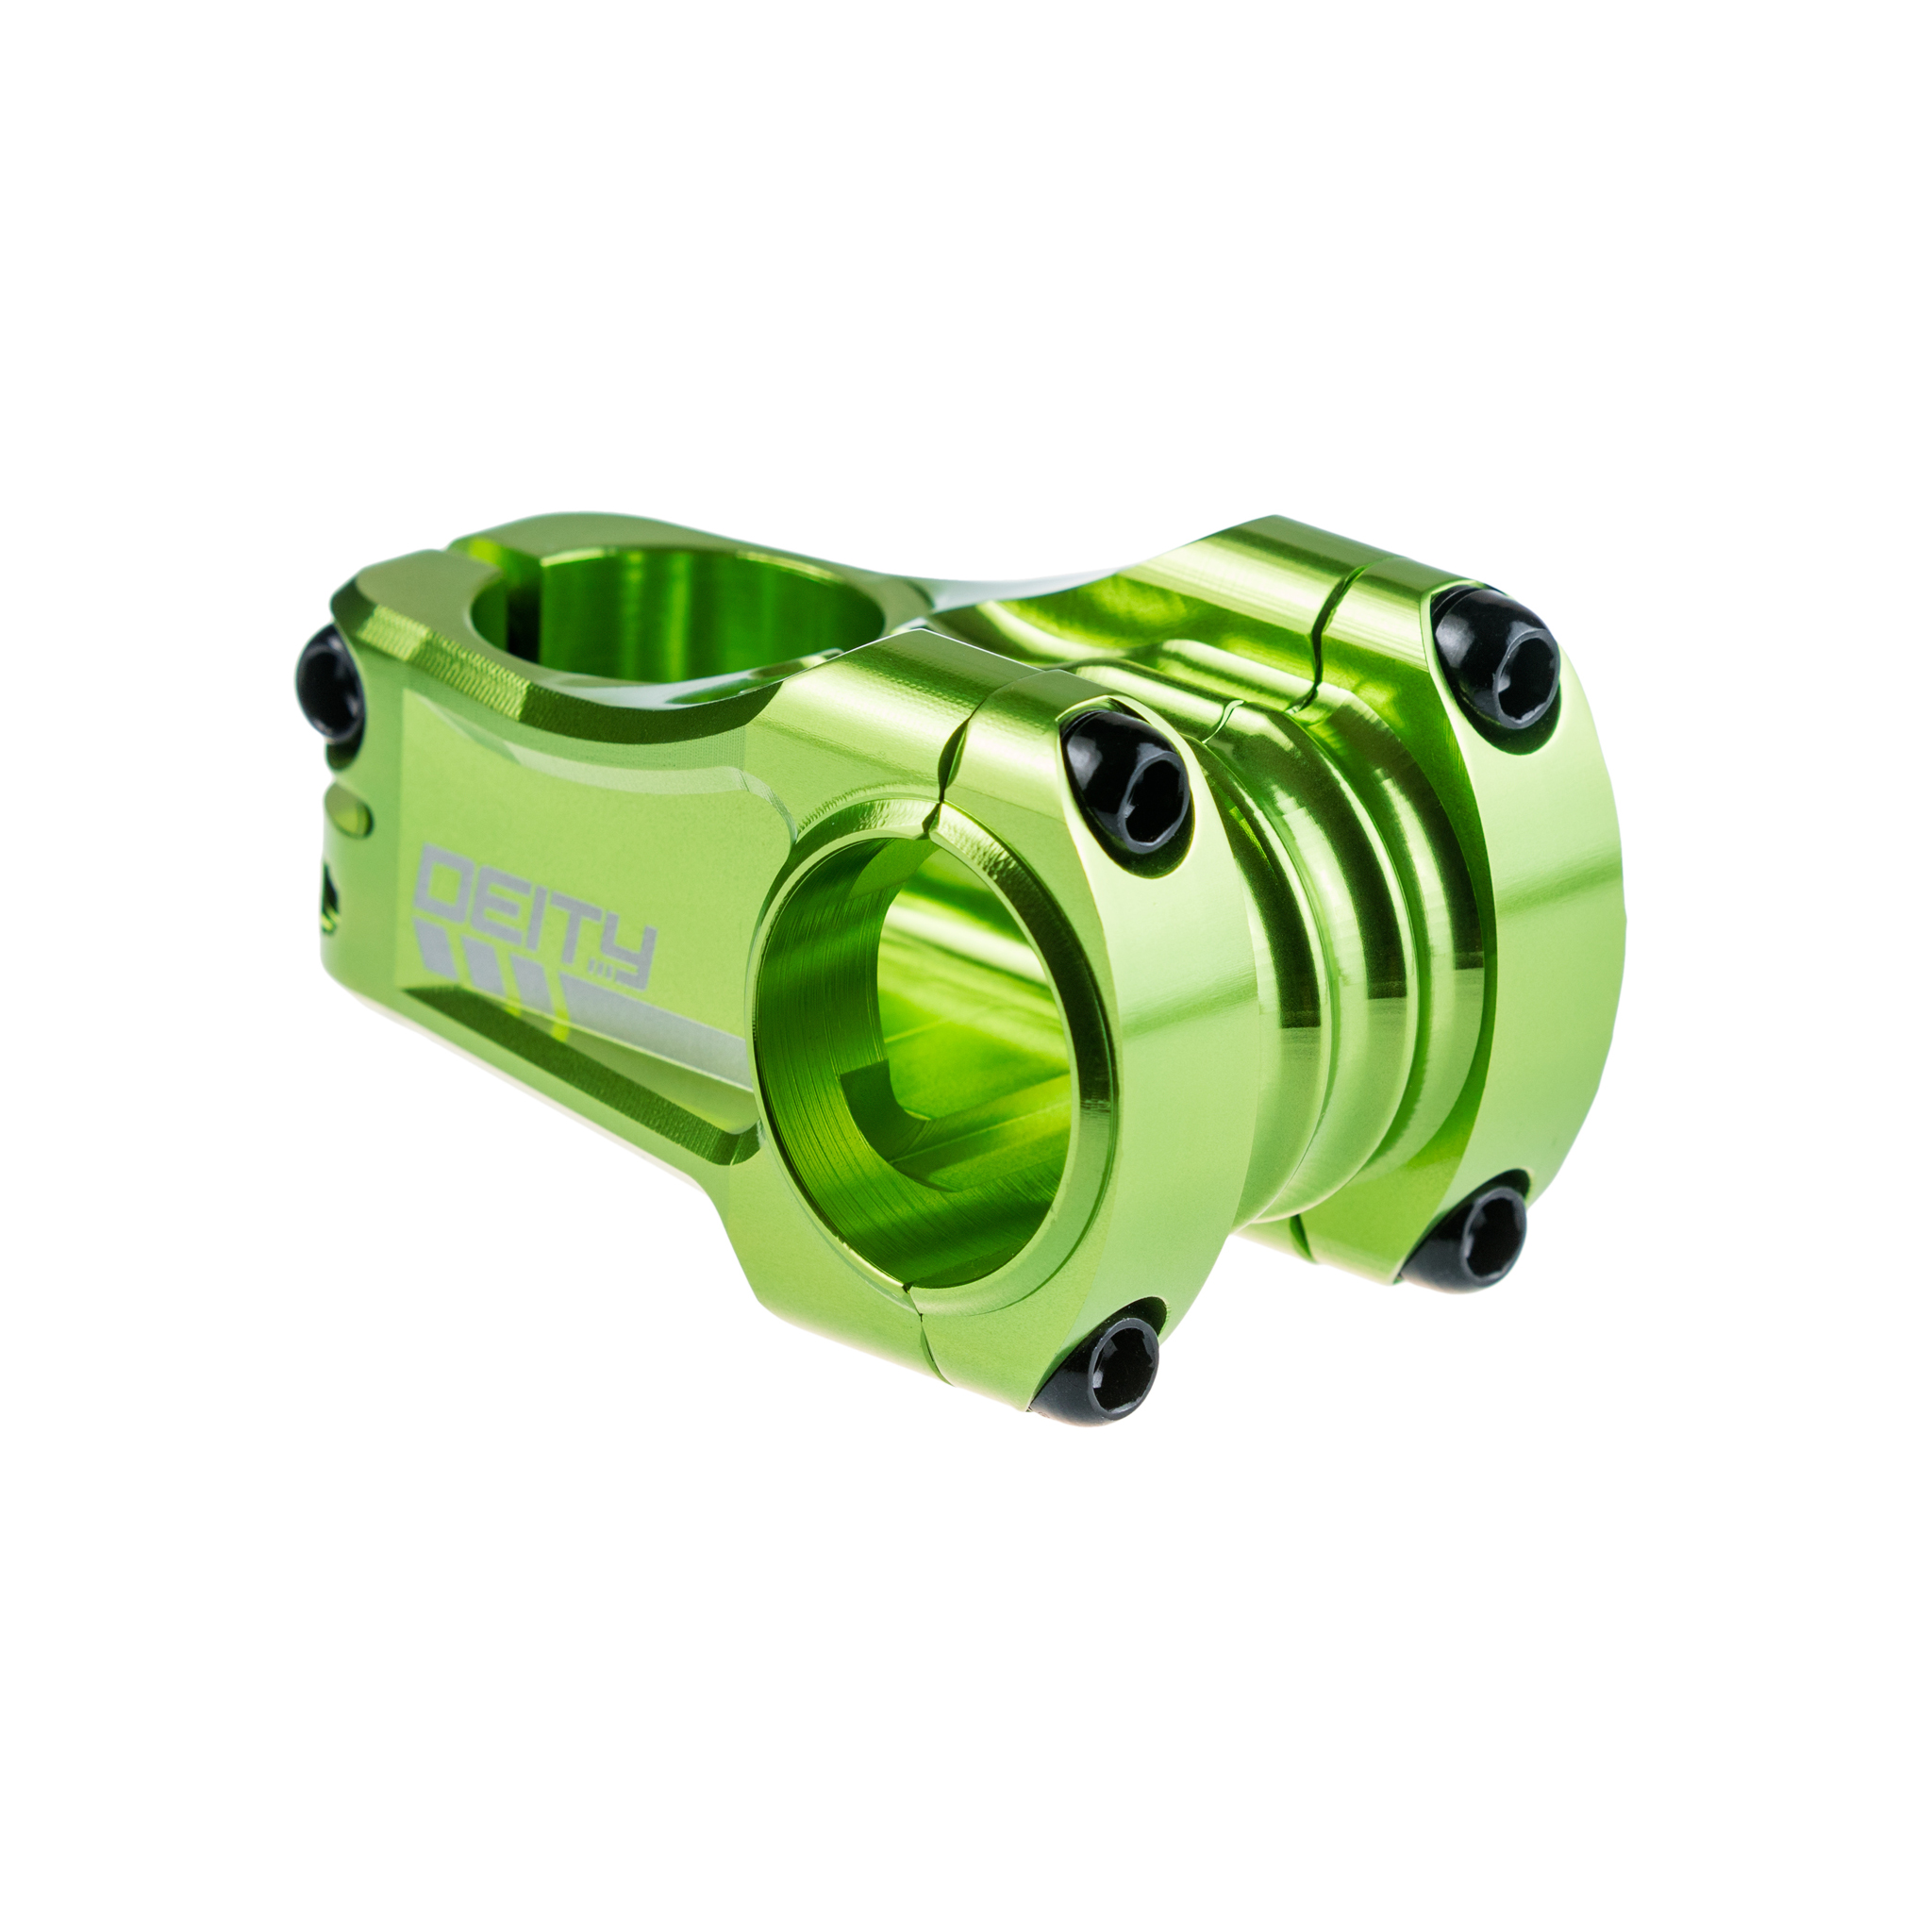 Copperhead 50mm 31.8 Stem - GREEN   will make you satisfied